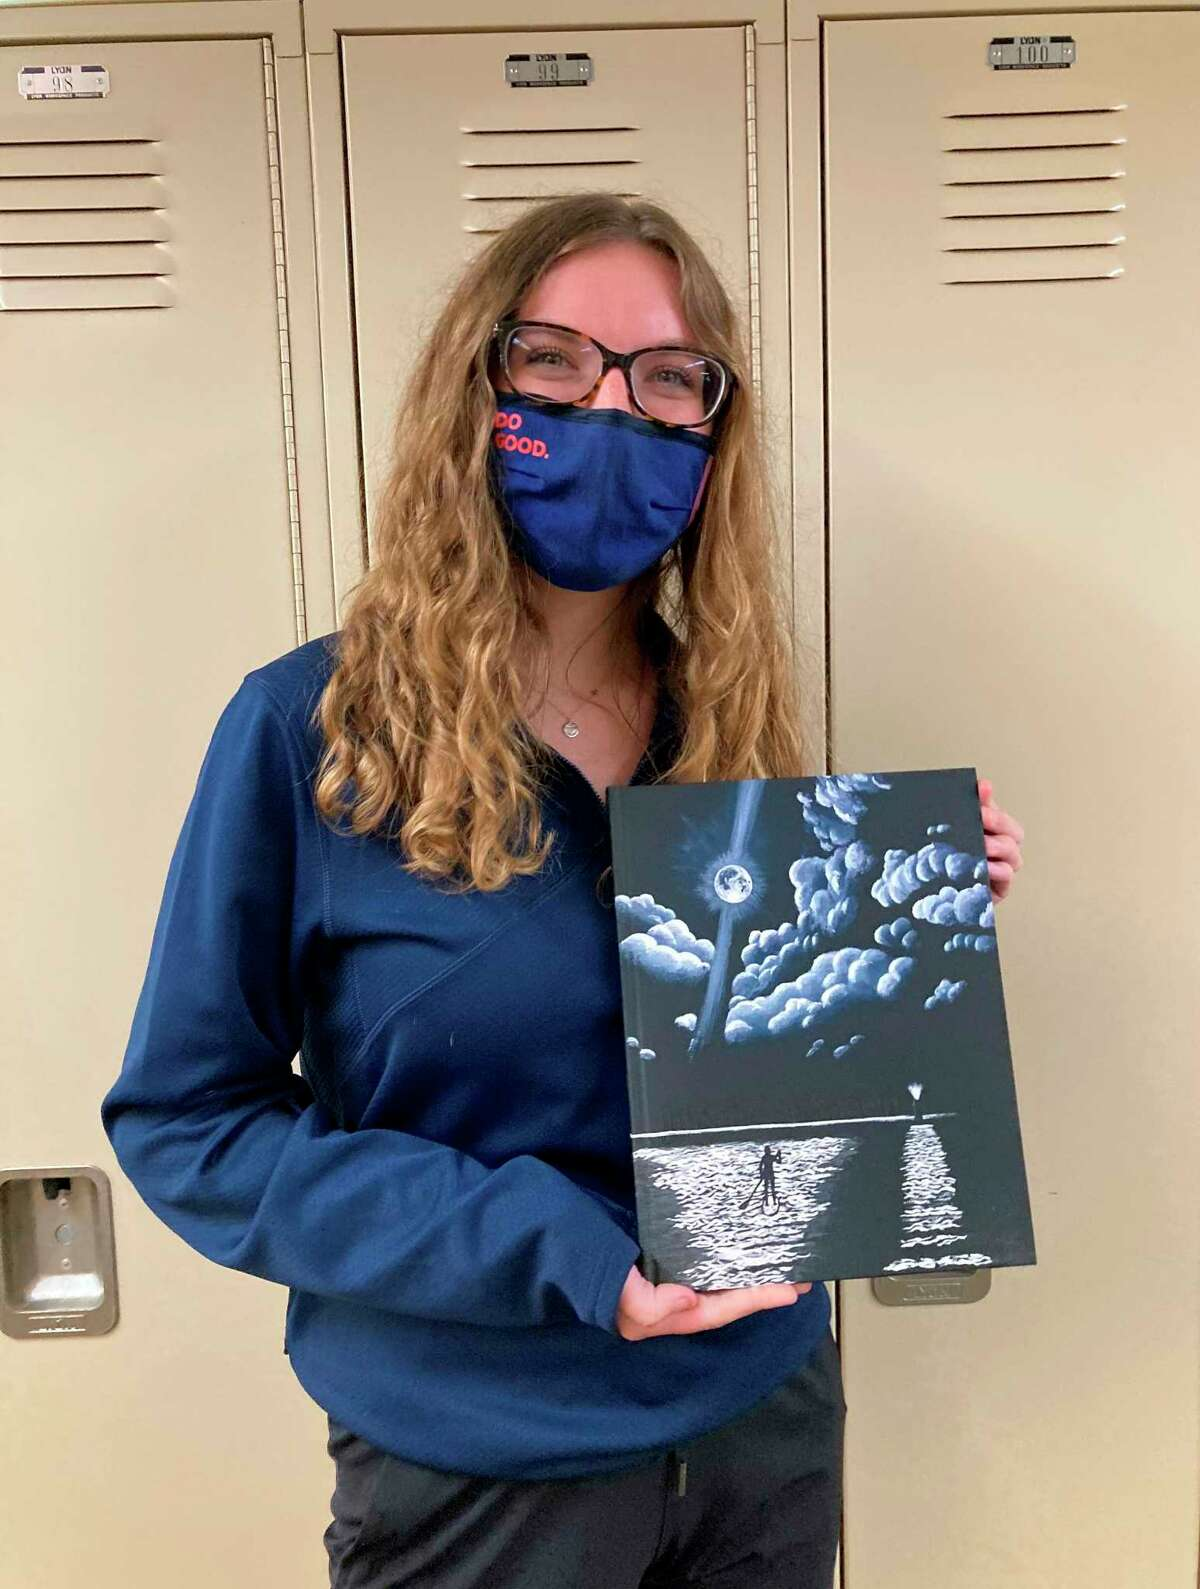 Frankfort High Schoolyearbook editor Sydney Millerholds the completed 2021 yearbook, which carries the theme